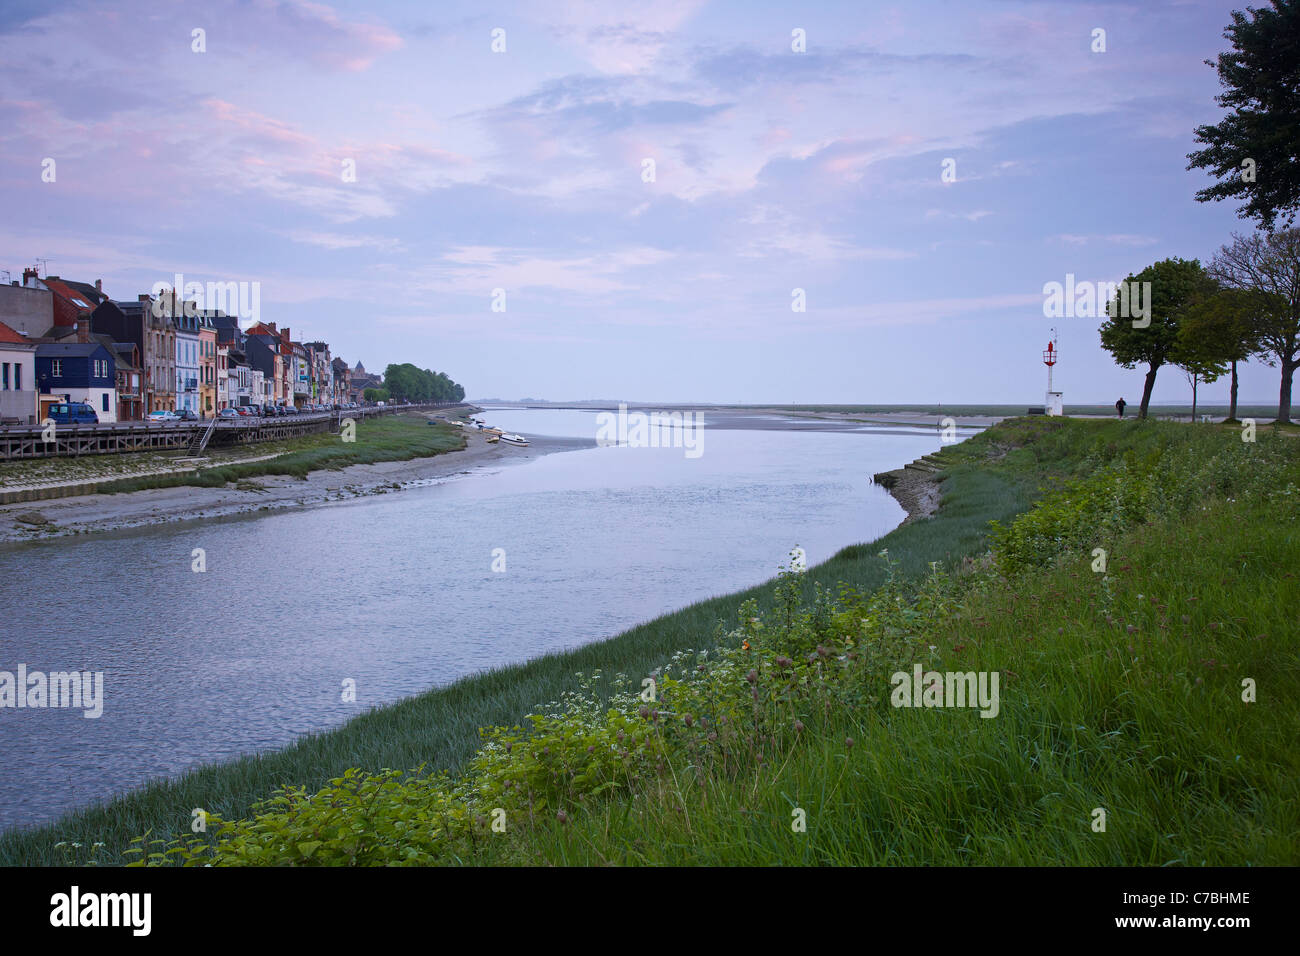 Morning at the river at Saint-Valery-sur-Somme, Dept. Somme, Picardie, France, Europe - Stock Image